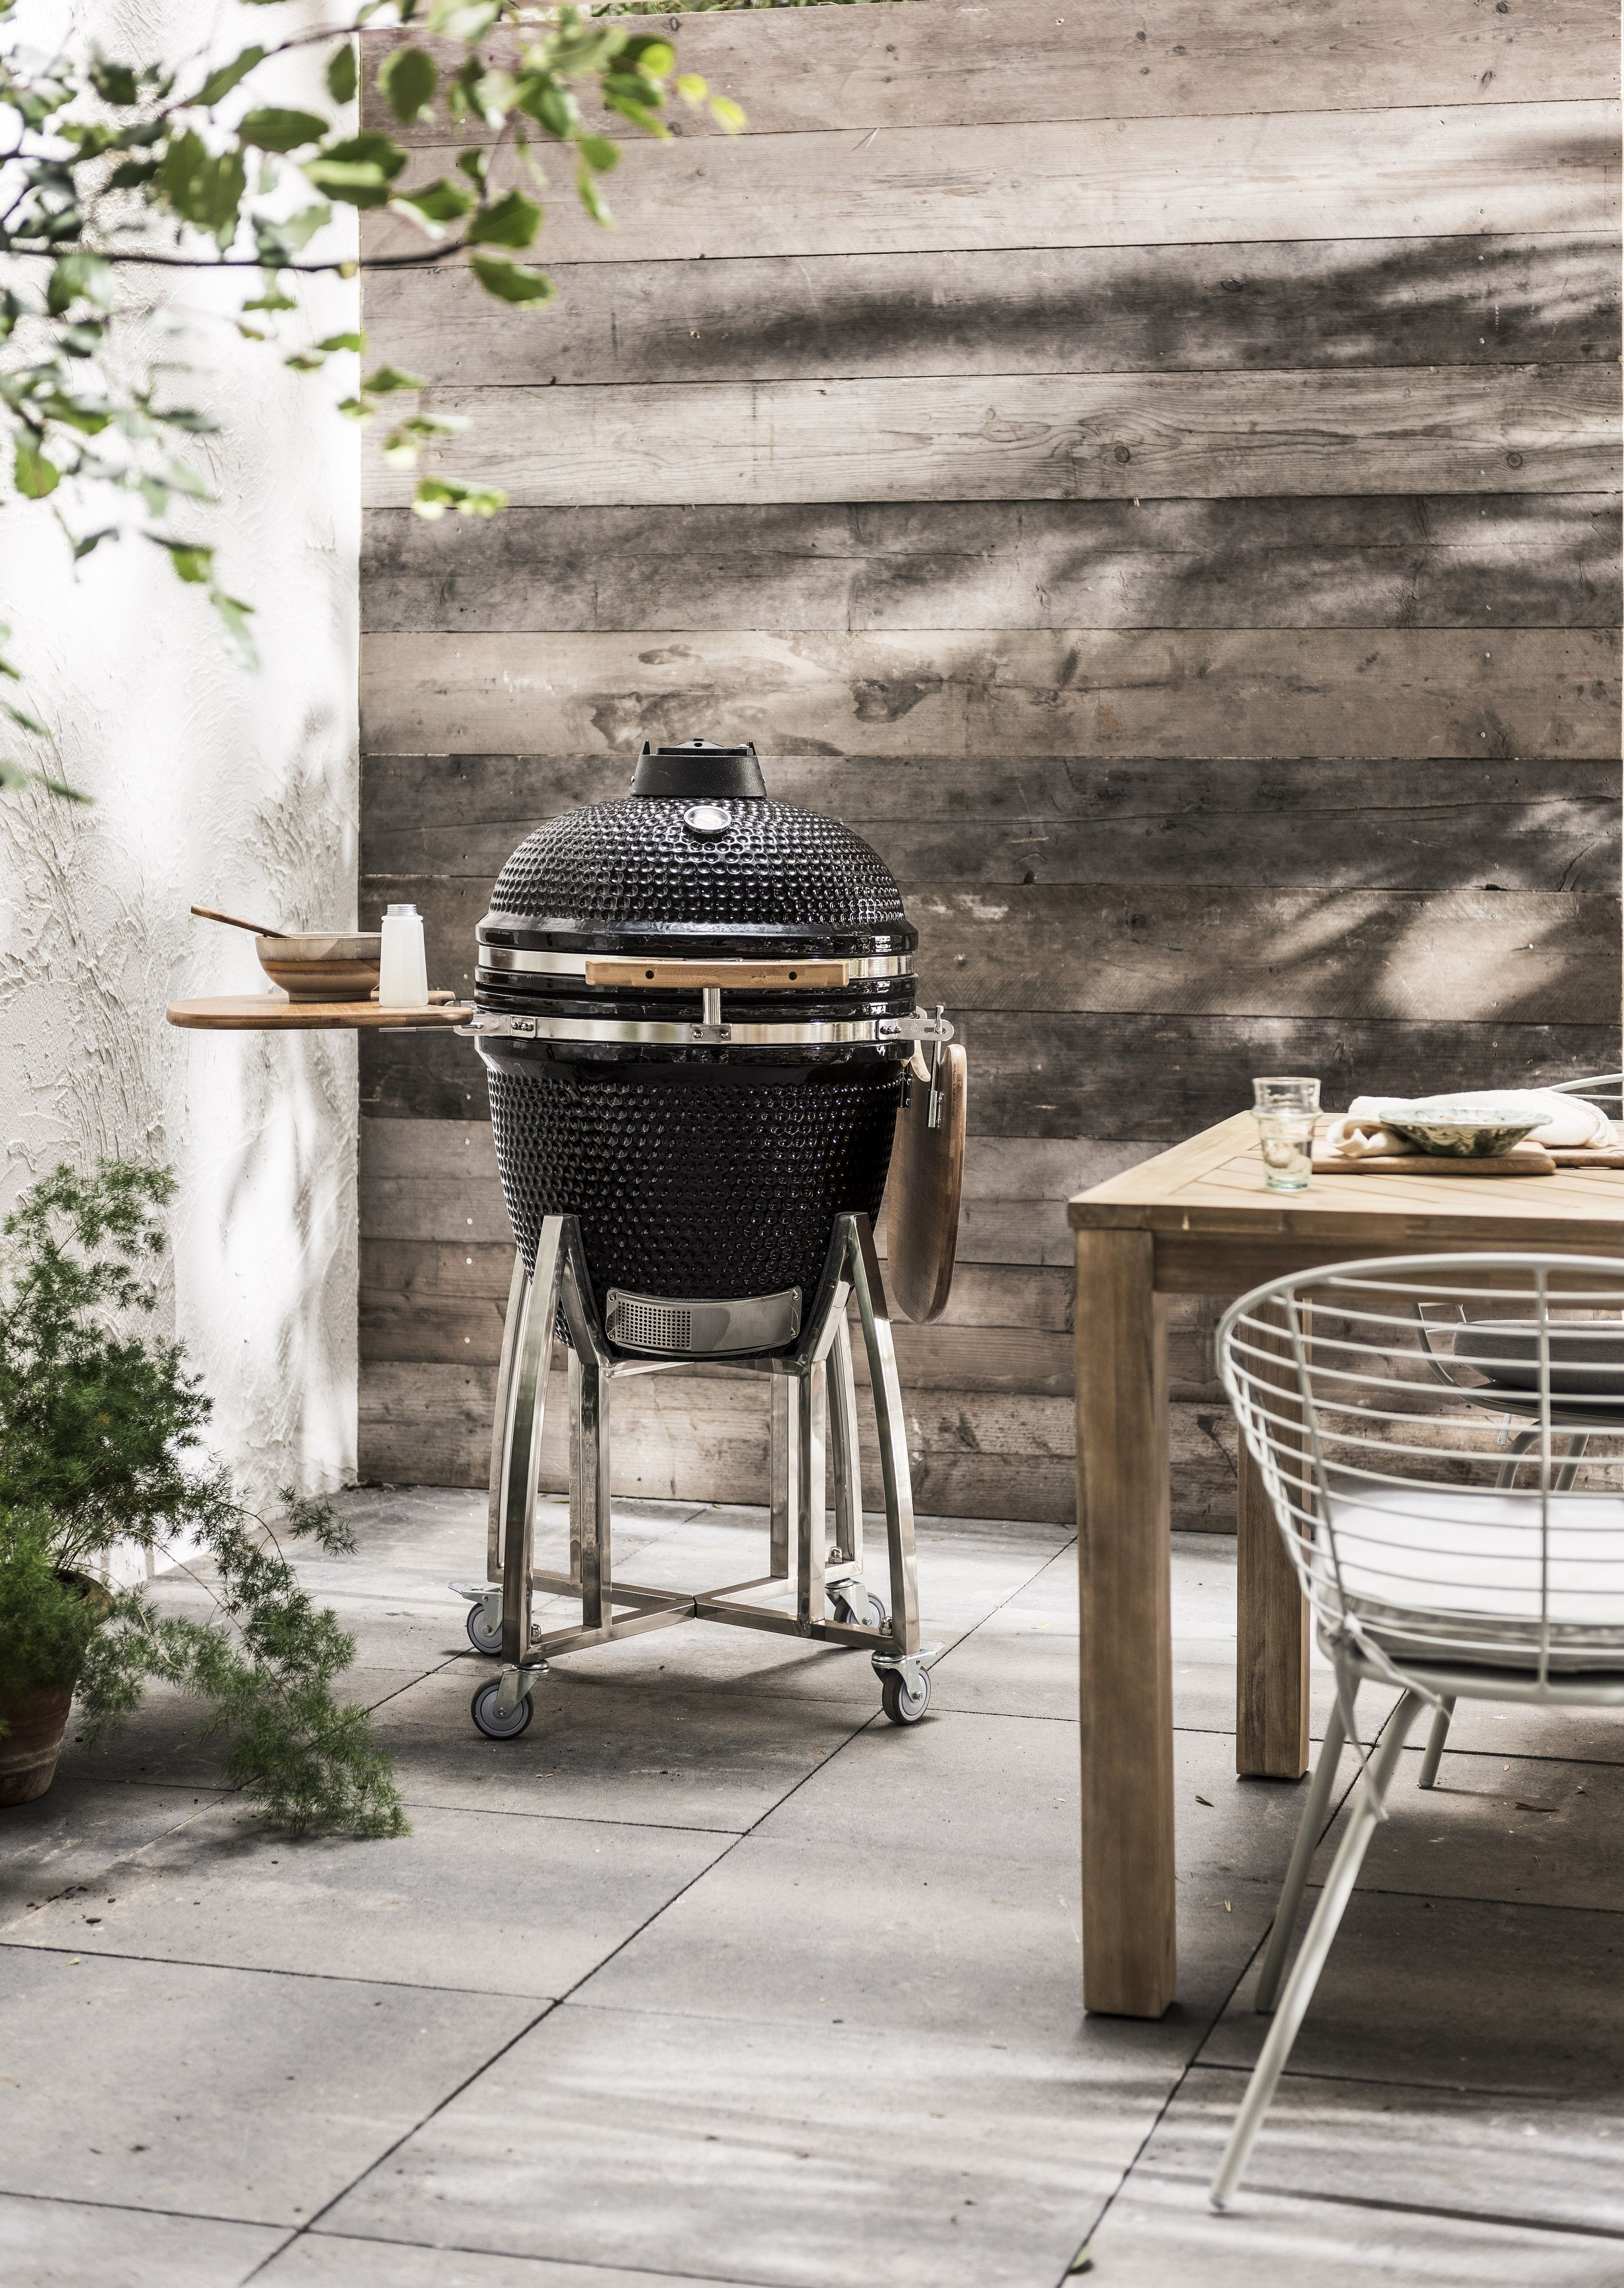 Karwei Barbecue Keramische Kamado Barbecue Ceramic Barbecue Karwei 3 2018